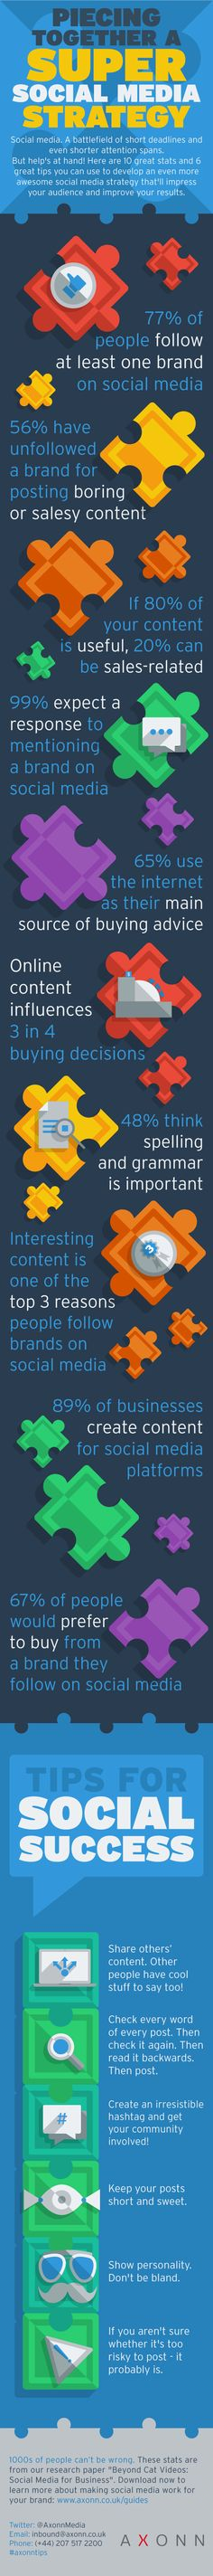 Piecing together a super social media strategy - #SocialMedia #Infographic #SocialNetworks #Infographics